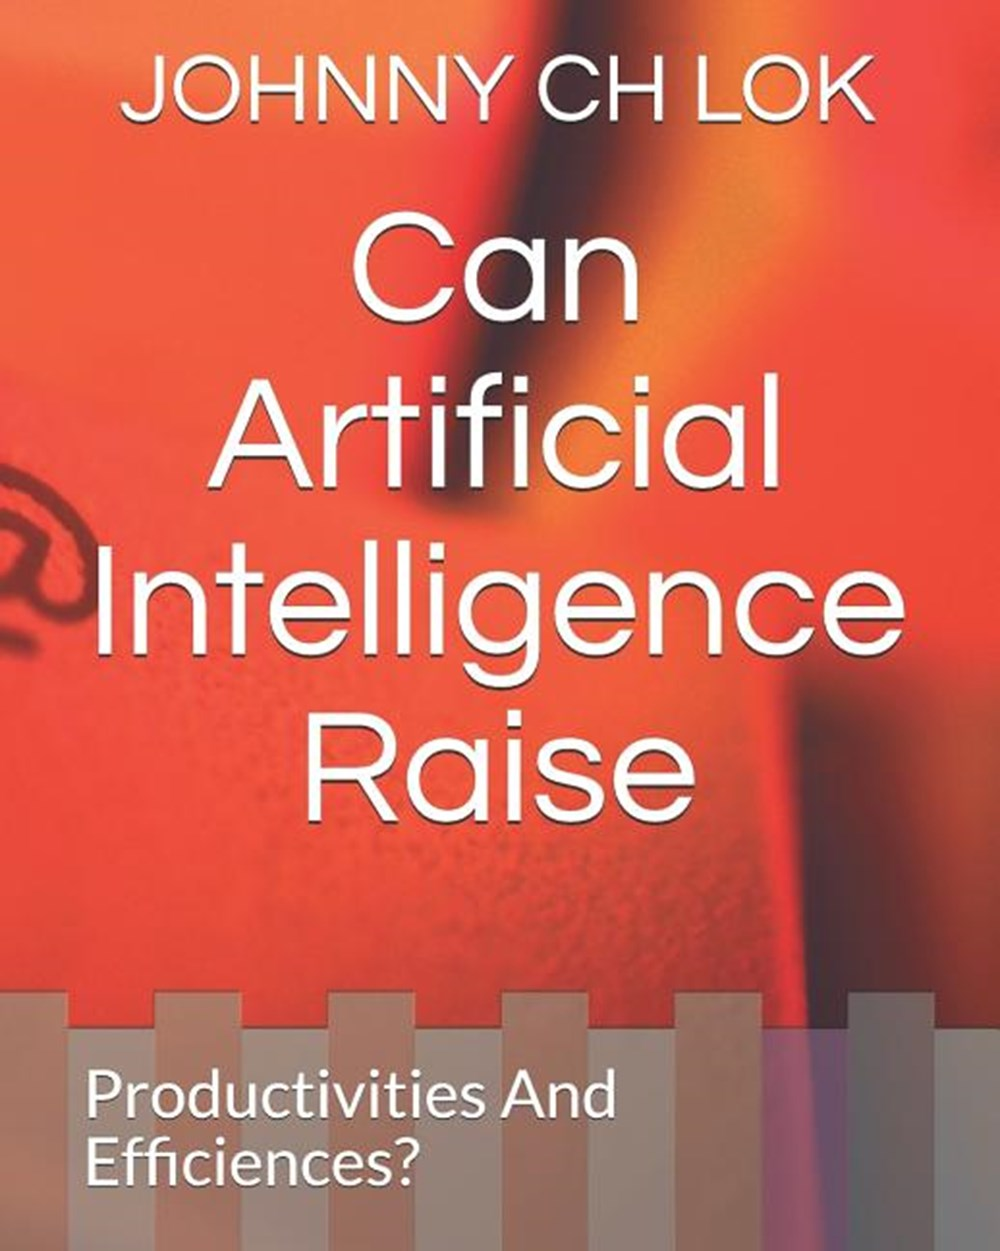 Can Artificial Intelligence Raise Productivities and Efficiences?